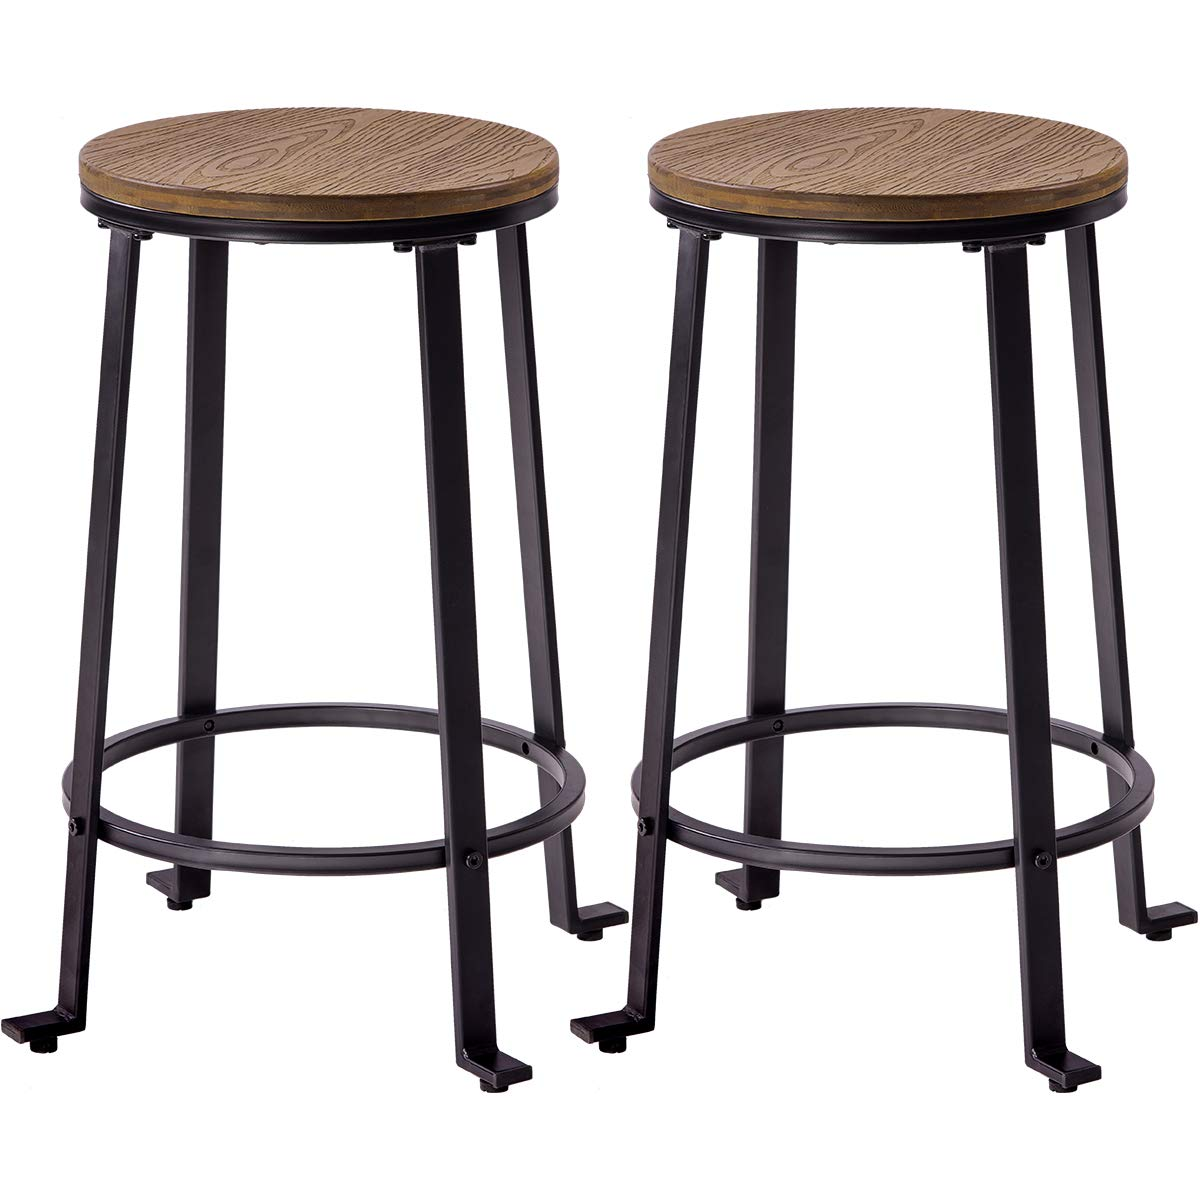 Harper&Bright Designs Metal Bar Stools, Counter Height Round Wood Top Barstools Set of 2, Light Brown